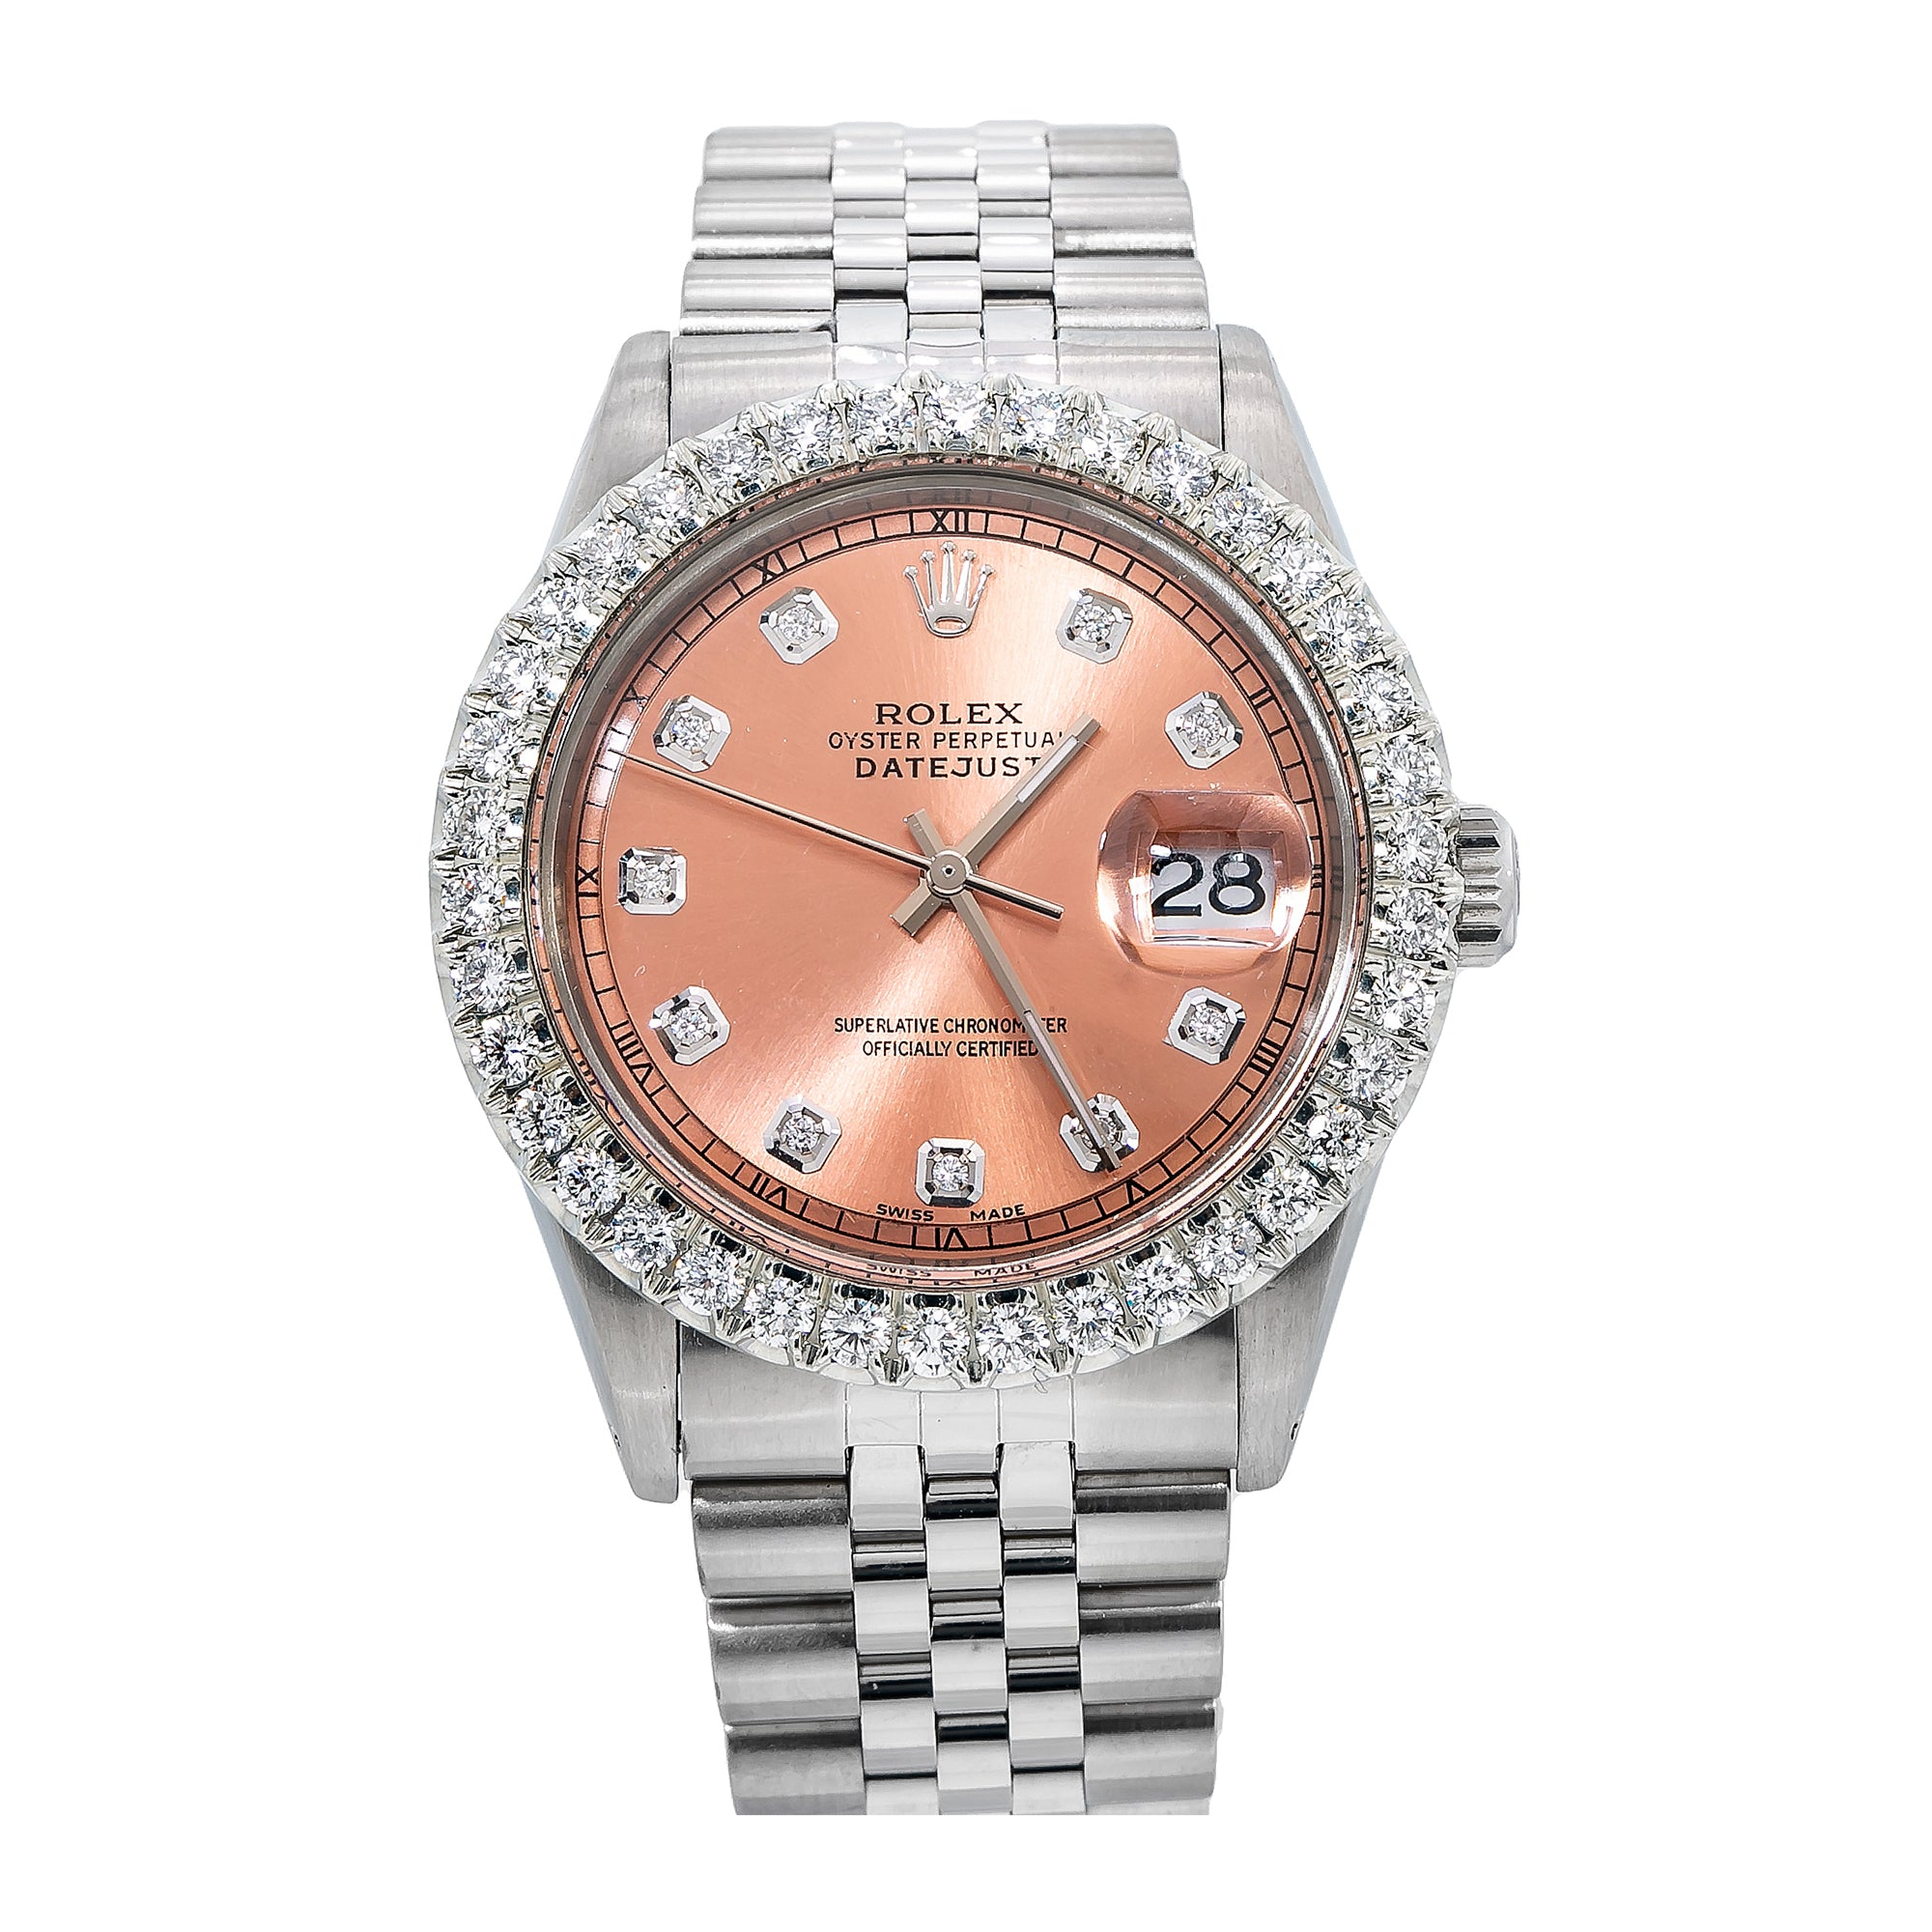 Rolex Datejust 1601 36MM Pink Diamond Dial With 2.75 CT Diamonds